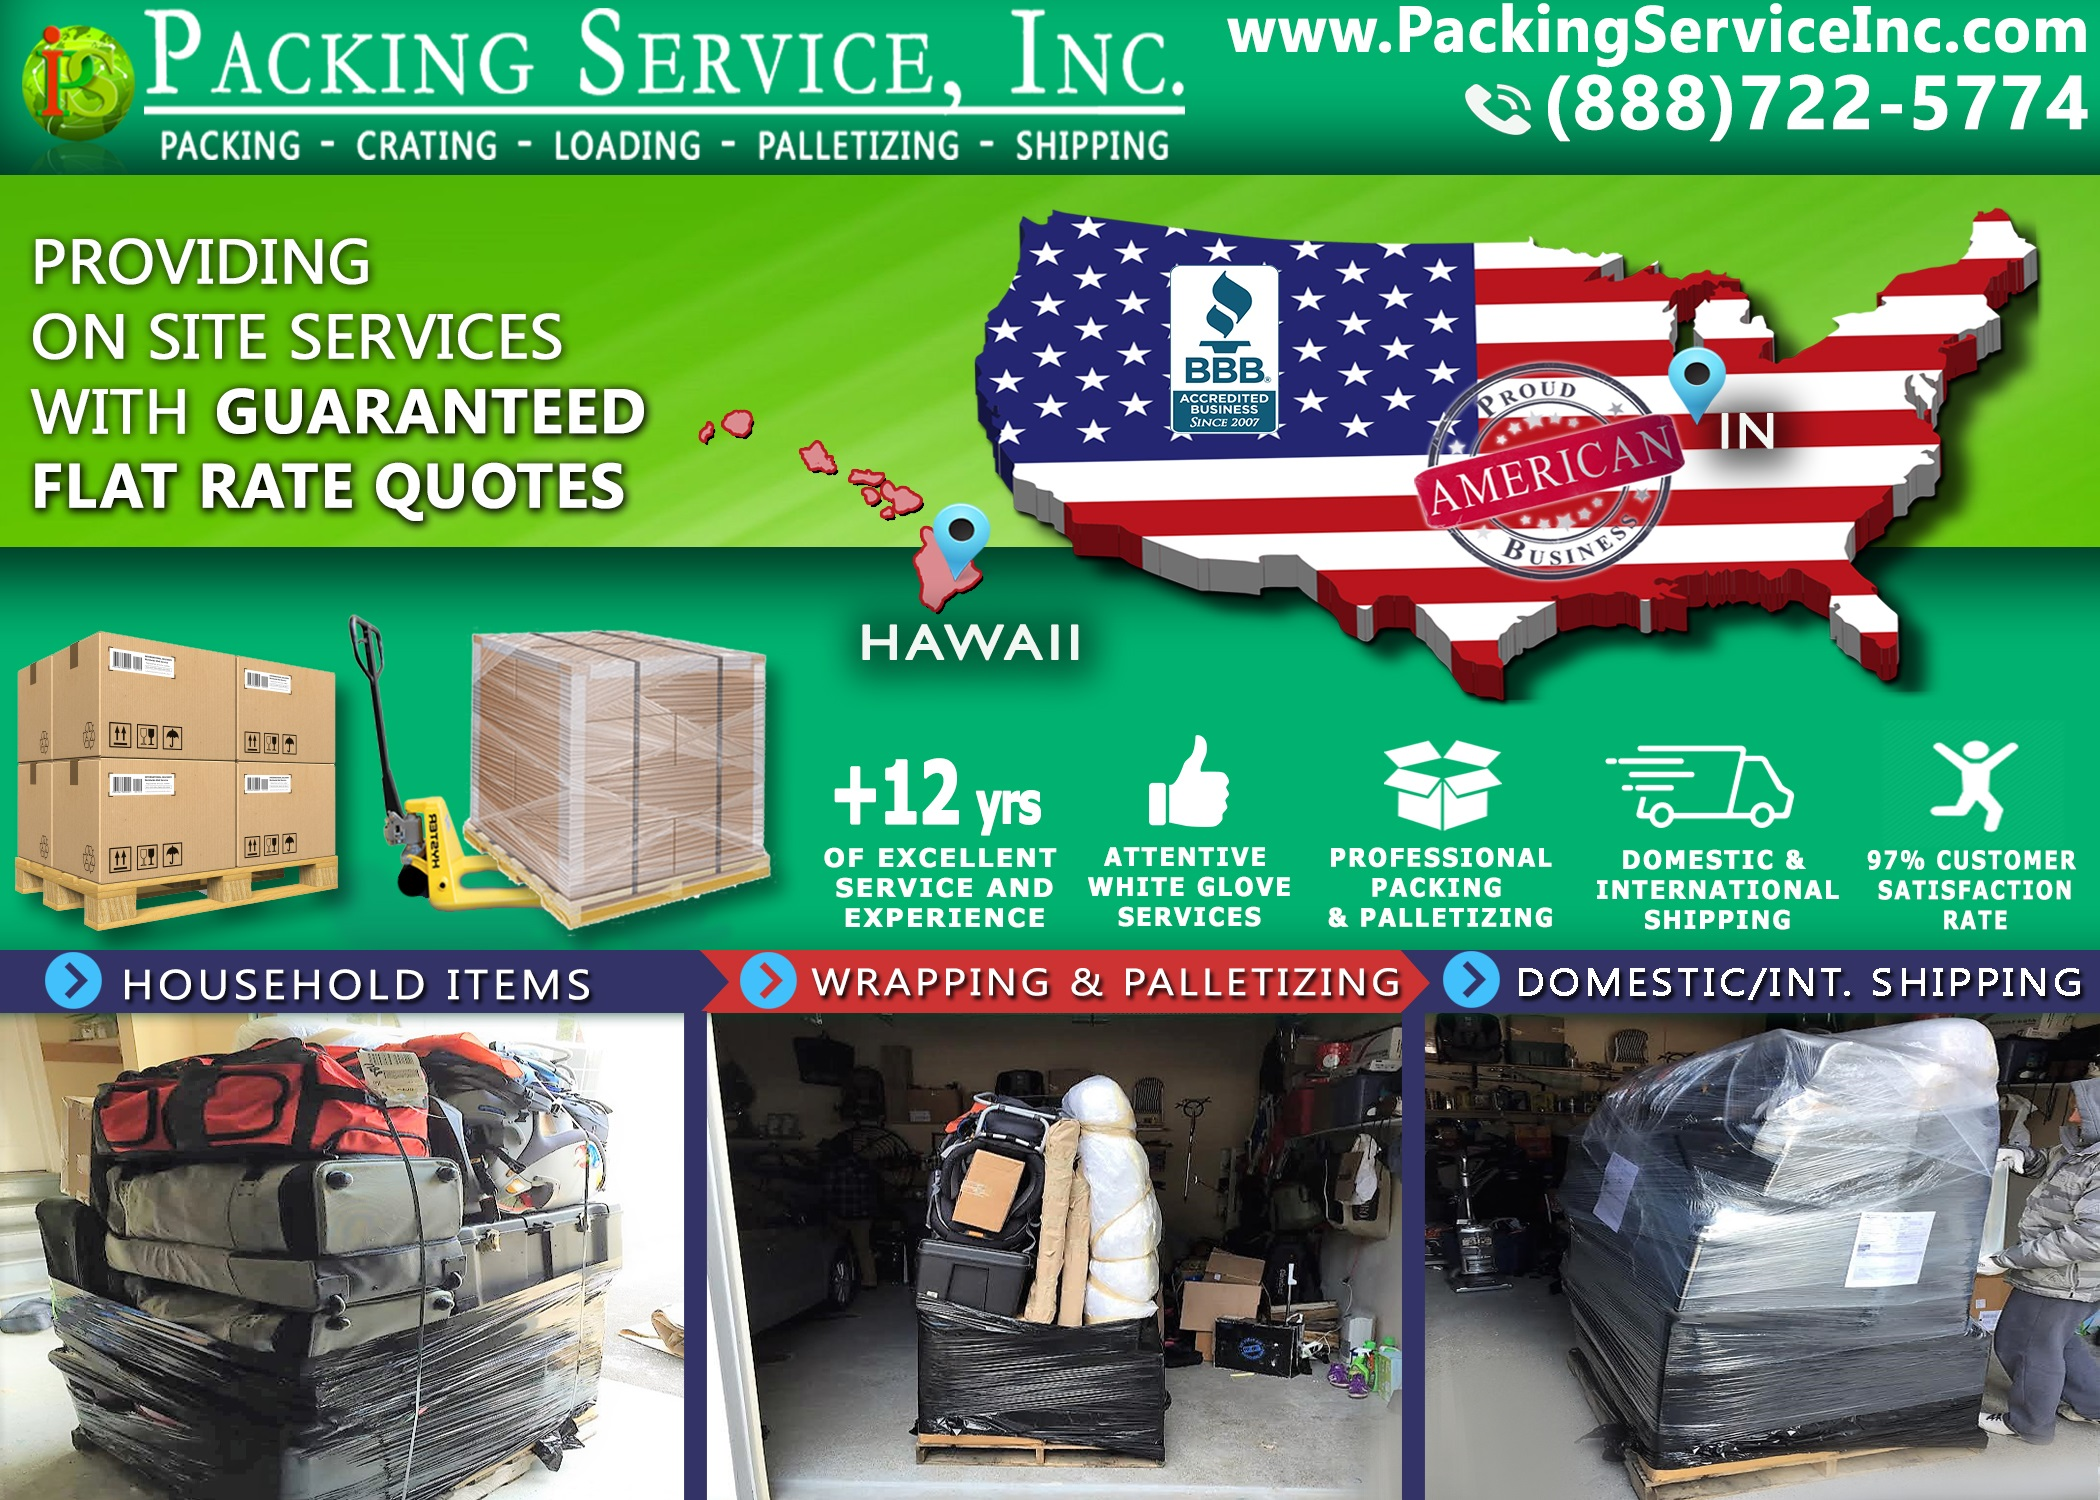 Palletize suitcases and boxes and Ship from Indiana to Hawaii with Packing Service, Inc. - 834